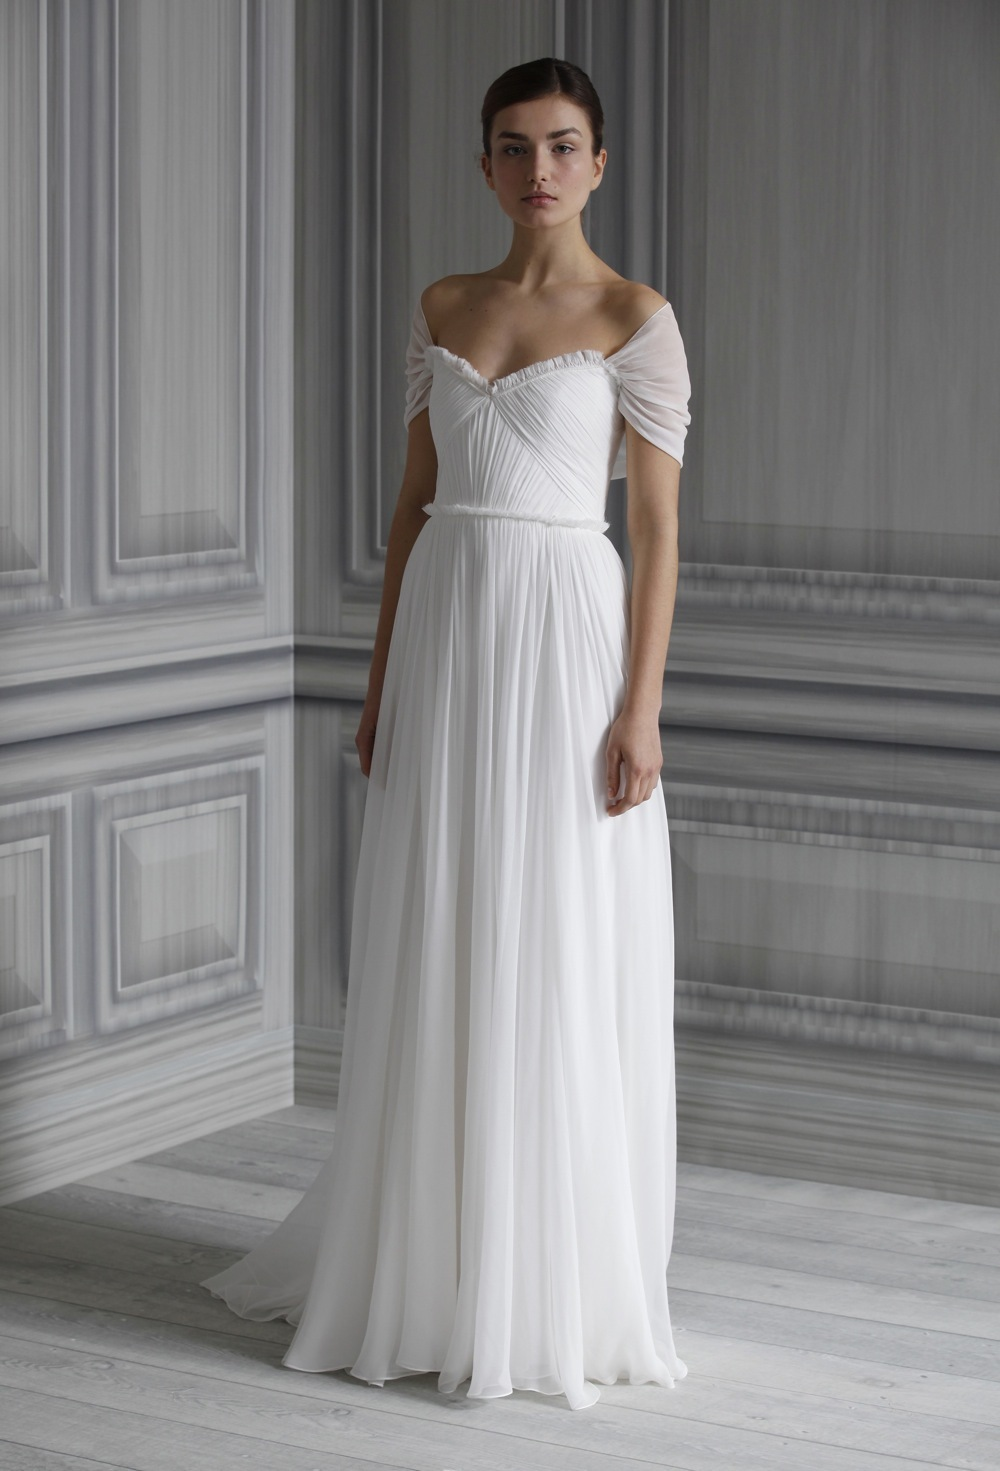 Wedding-dress-monique-lhuillier-bridal-gowns-spring-2012-prima.full